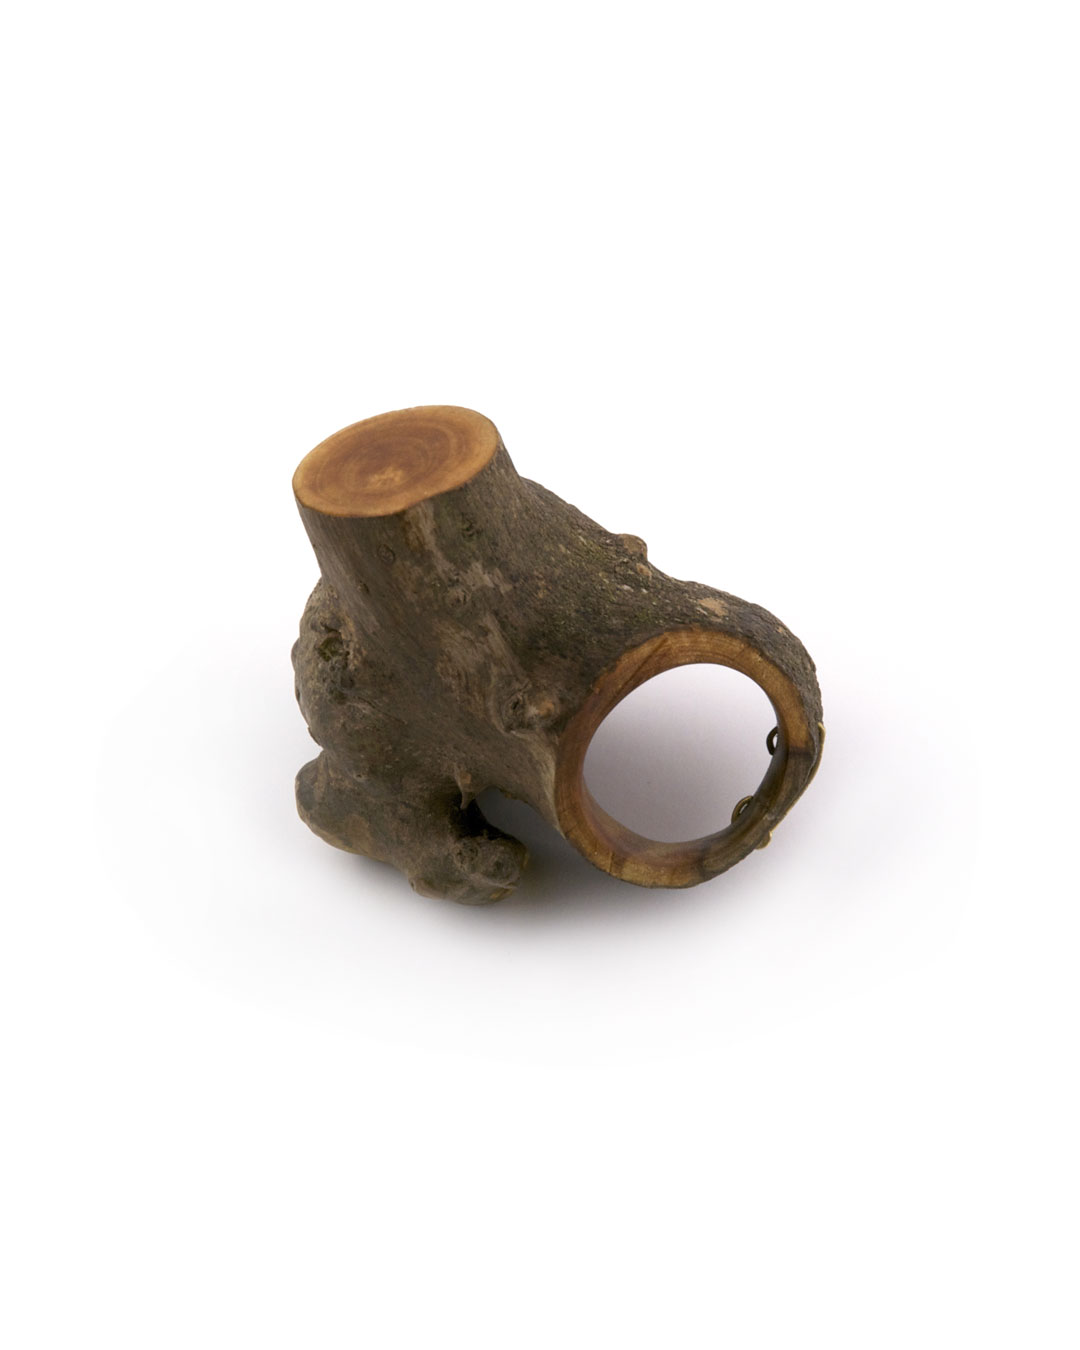 Jenny Klemming, Facet, 2011, ring; apple wood, 18ct gold, lacquer, 52 x 38 x 44 mm, €835